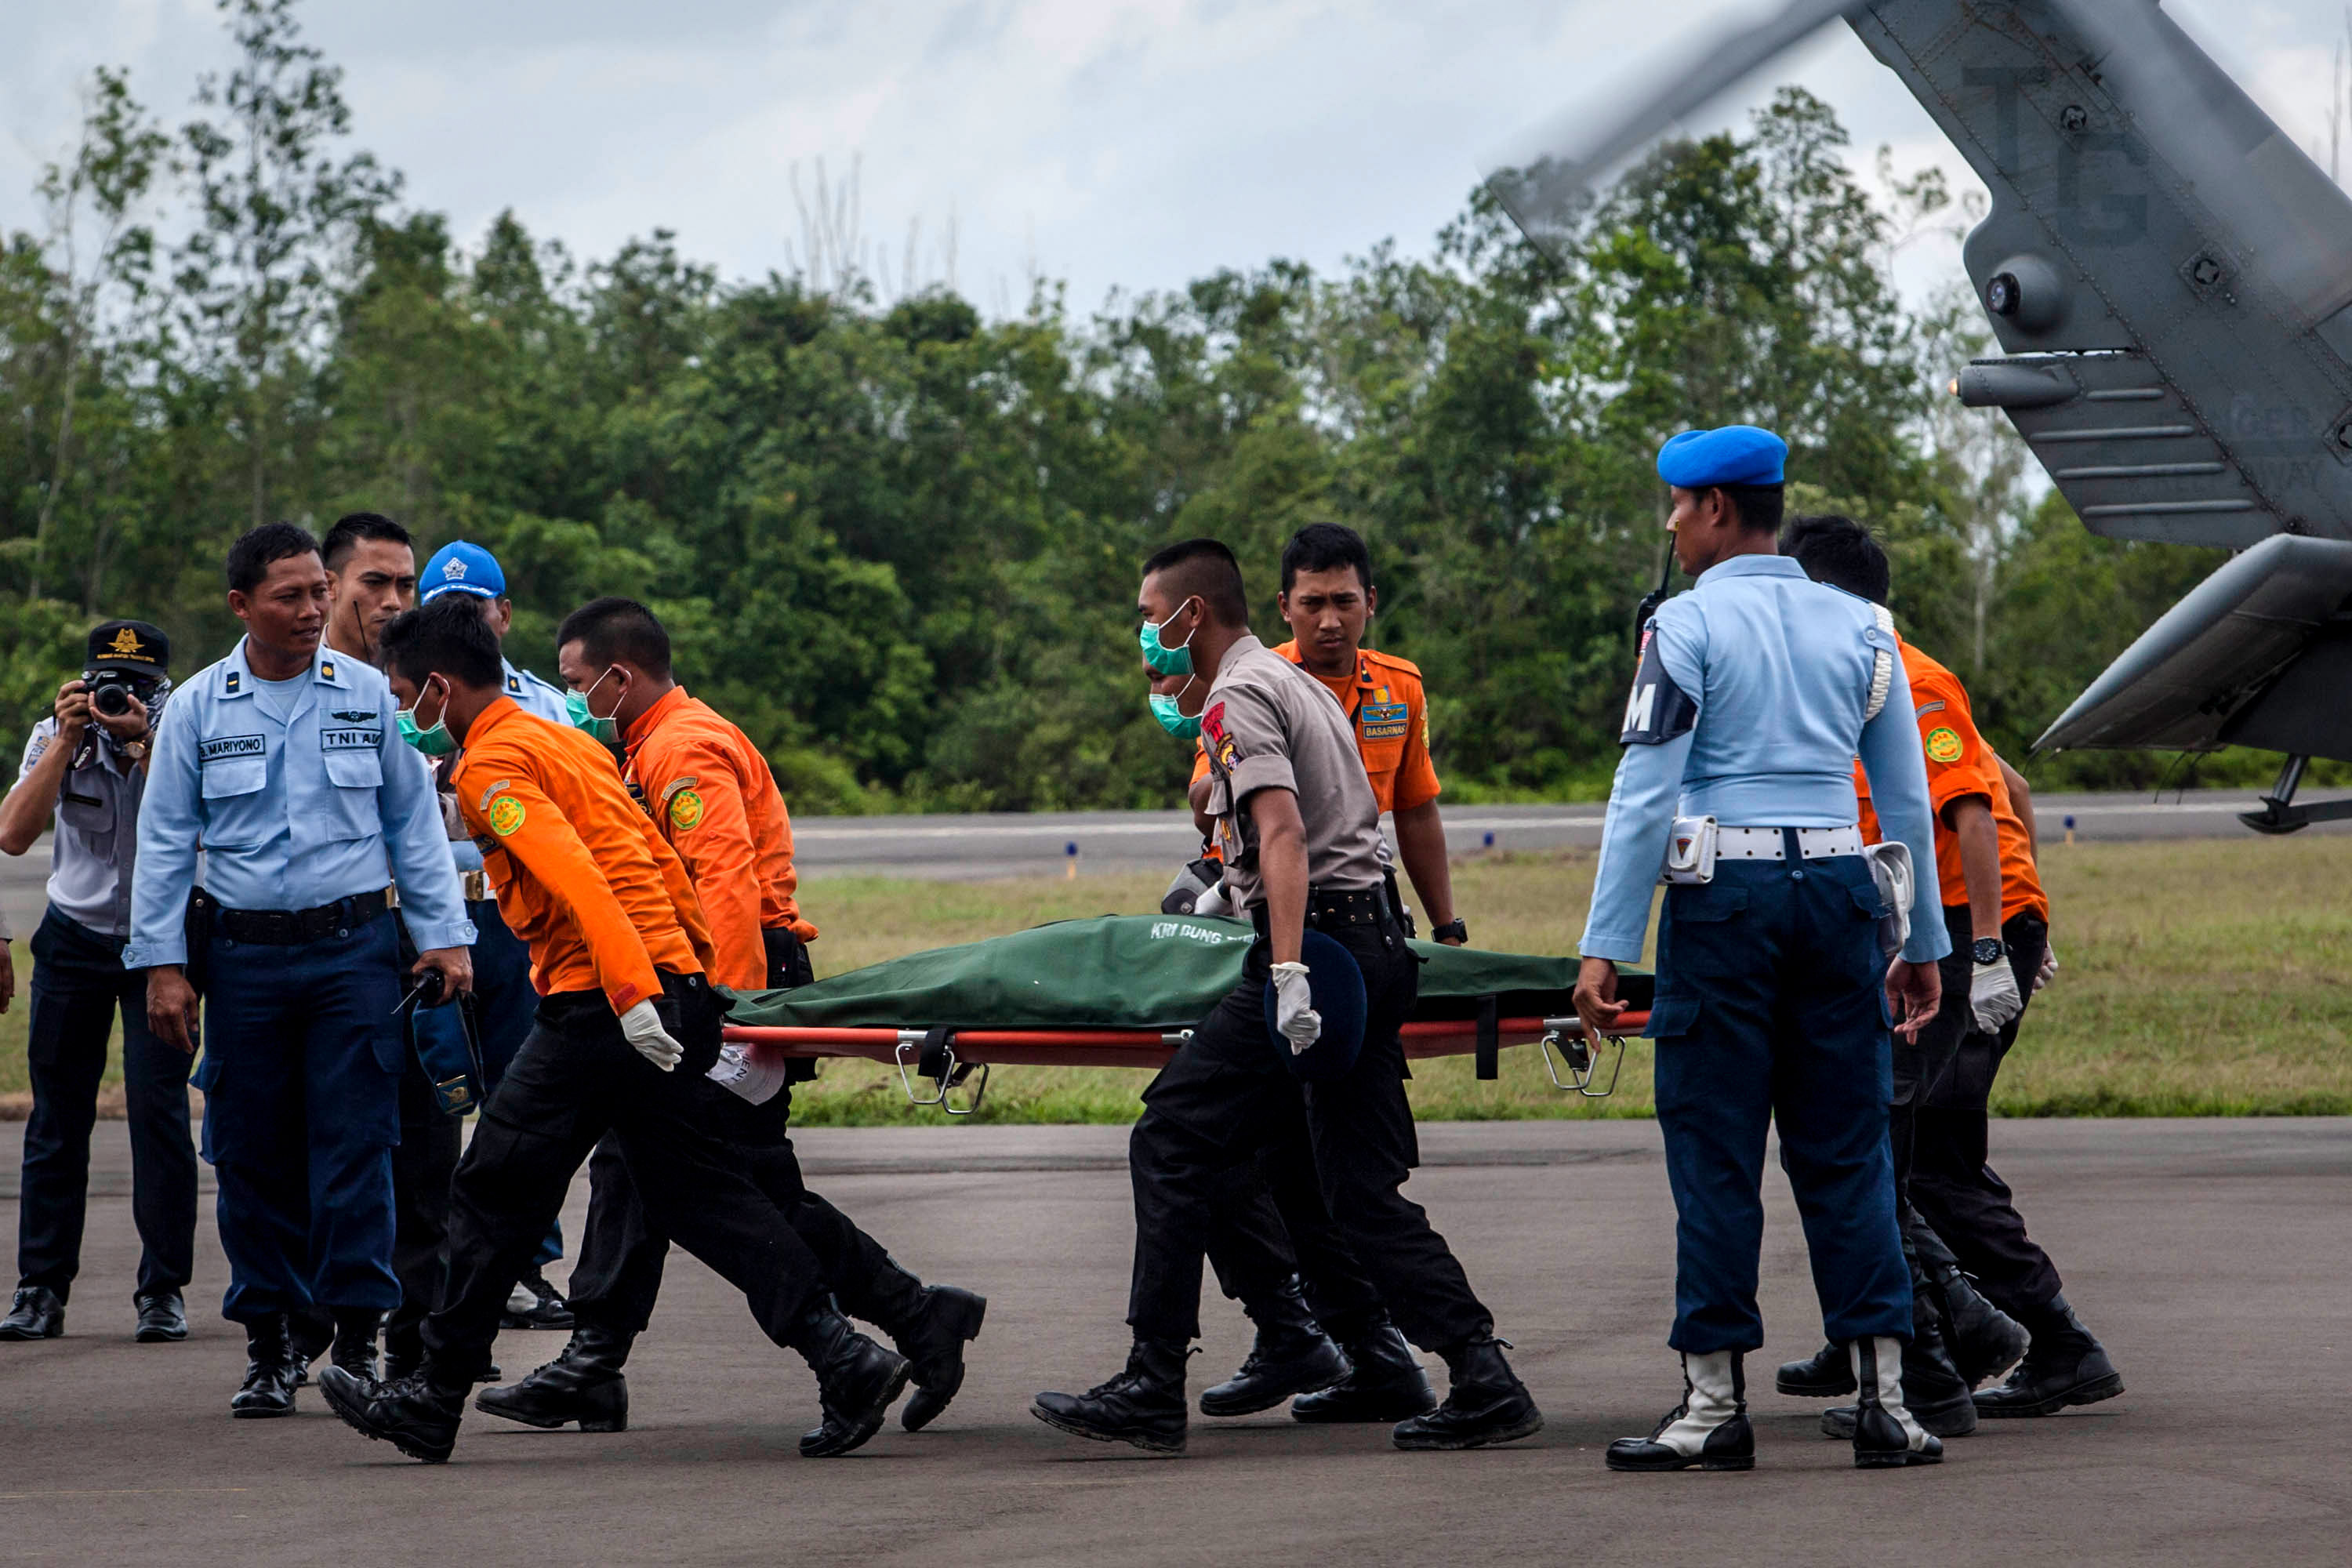 Members of an Indonesian search and rescue team carry the body of a victim of the AirAsia flight QZ8501 crash from a USS navy helicopter at Iskandar Airbase on January 02, 2015 in Pangkalan Bun, Central Kalimantan, Indonesia.